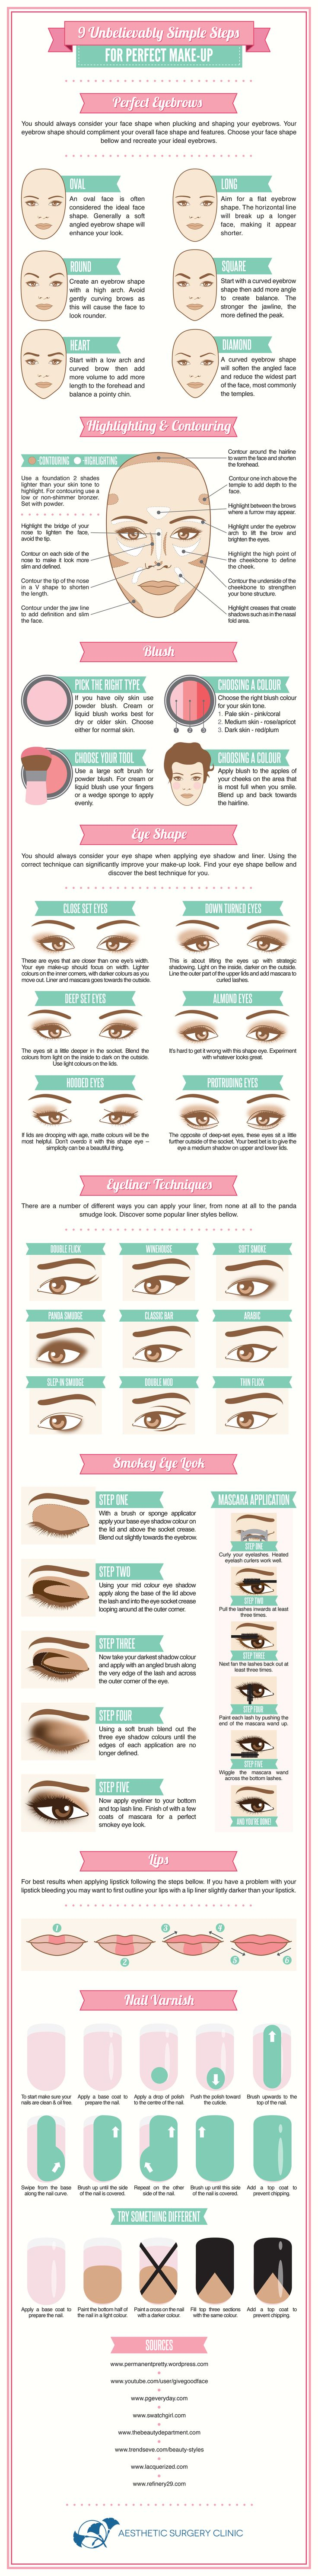 9 Unbelievably Simple Steps to Perfect Makeup (Infographic!)